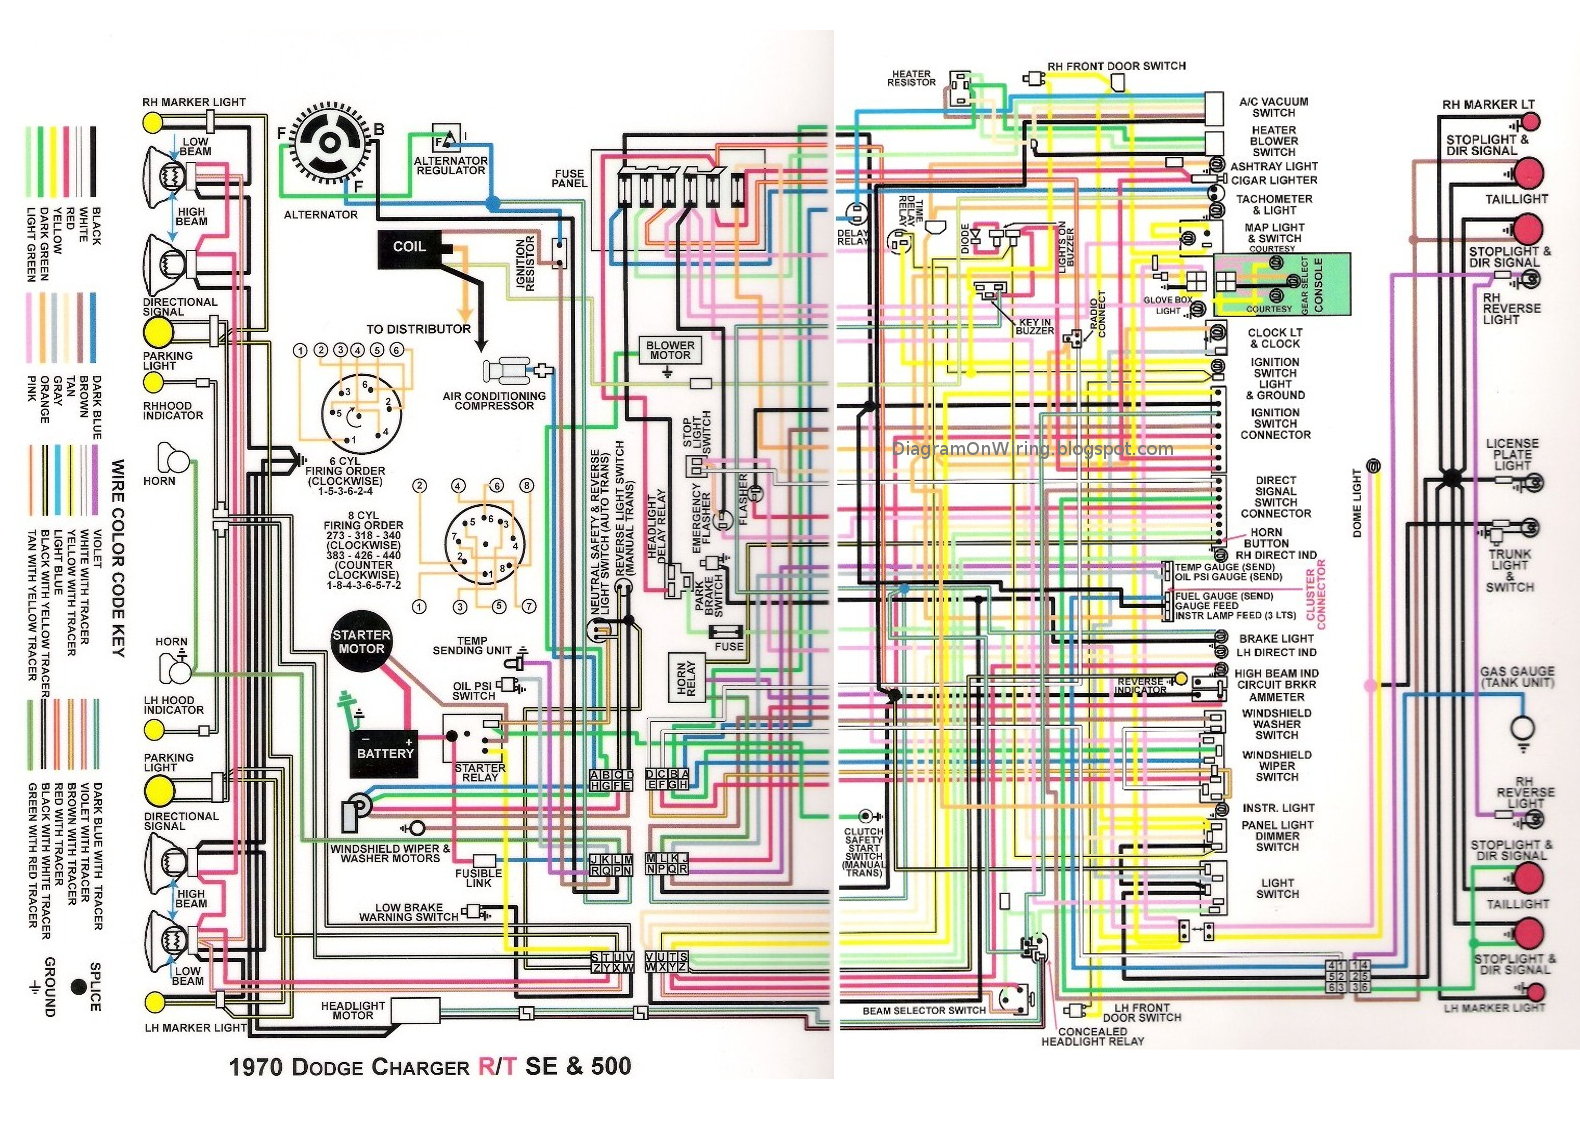 1969 mustang radio wiring diagram atwood water heater relay 1966 color all data 6 cylinder manual e books ford